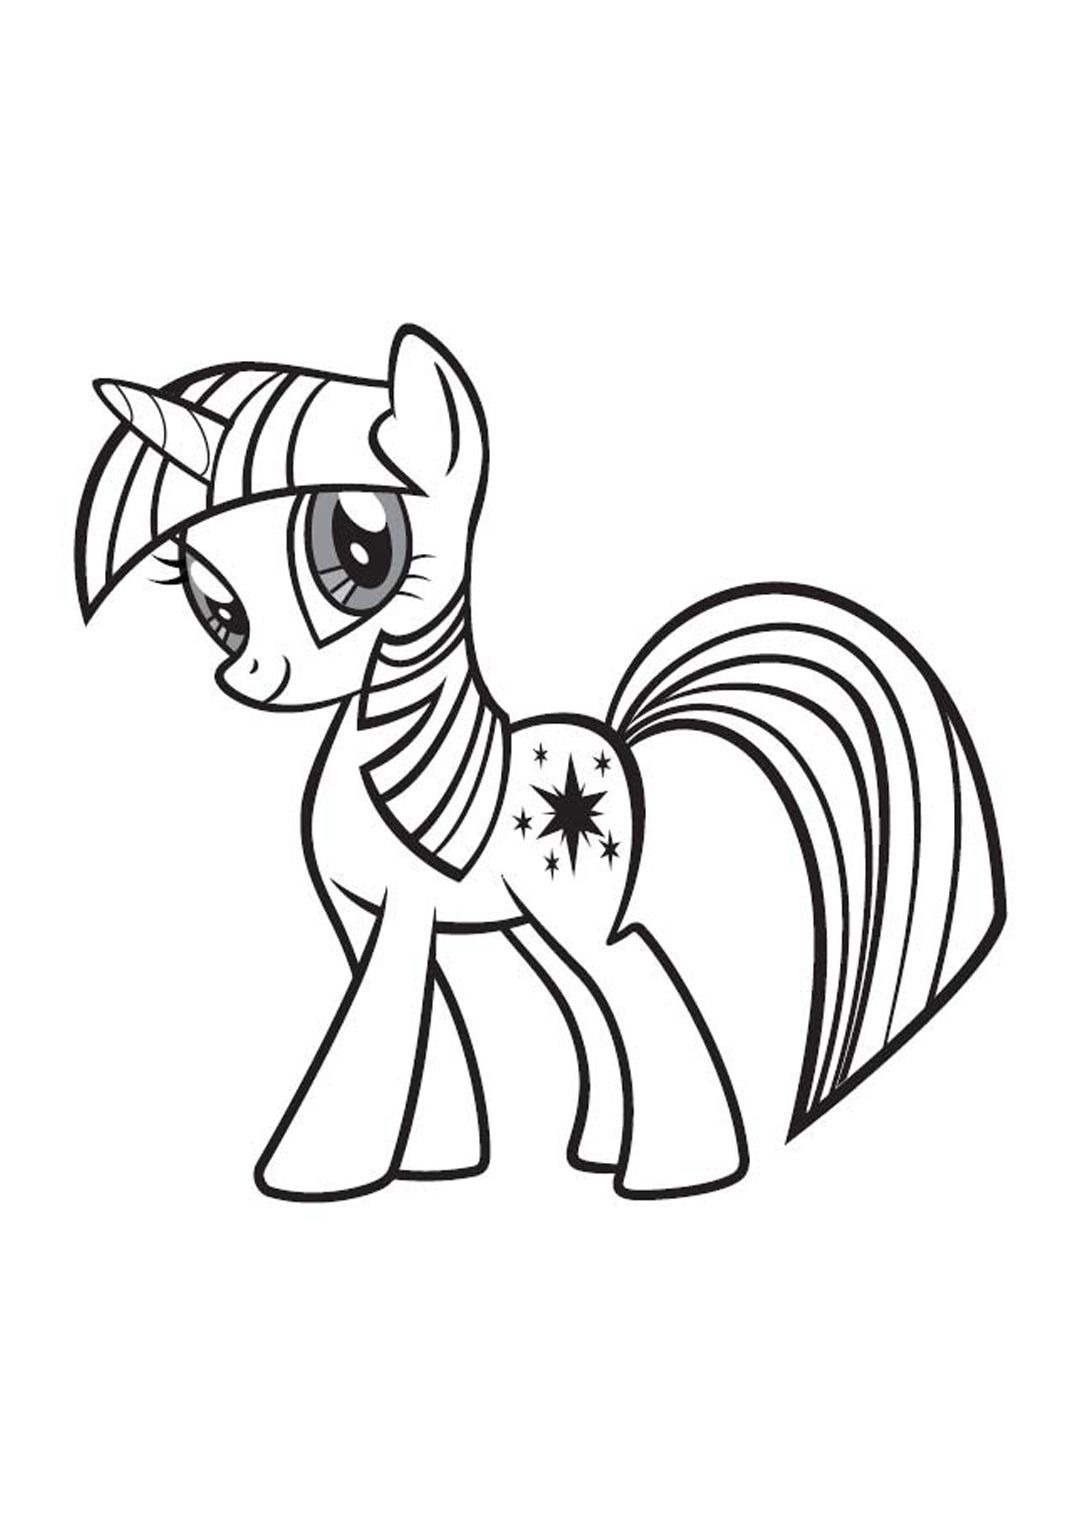 Coloriage My Little Pony 16 - Coloriage My Little Pony - Coloriages Dessins animes